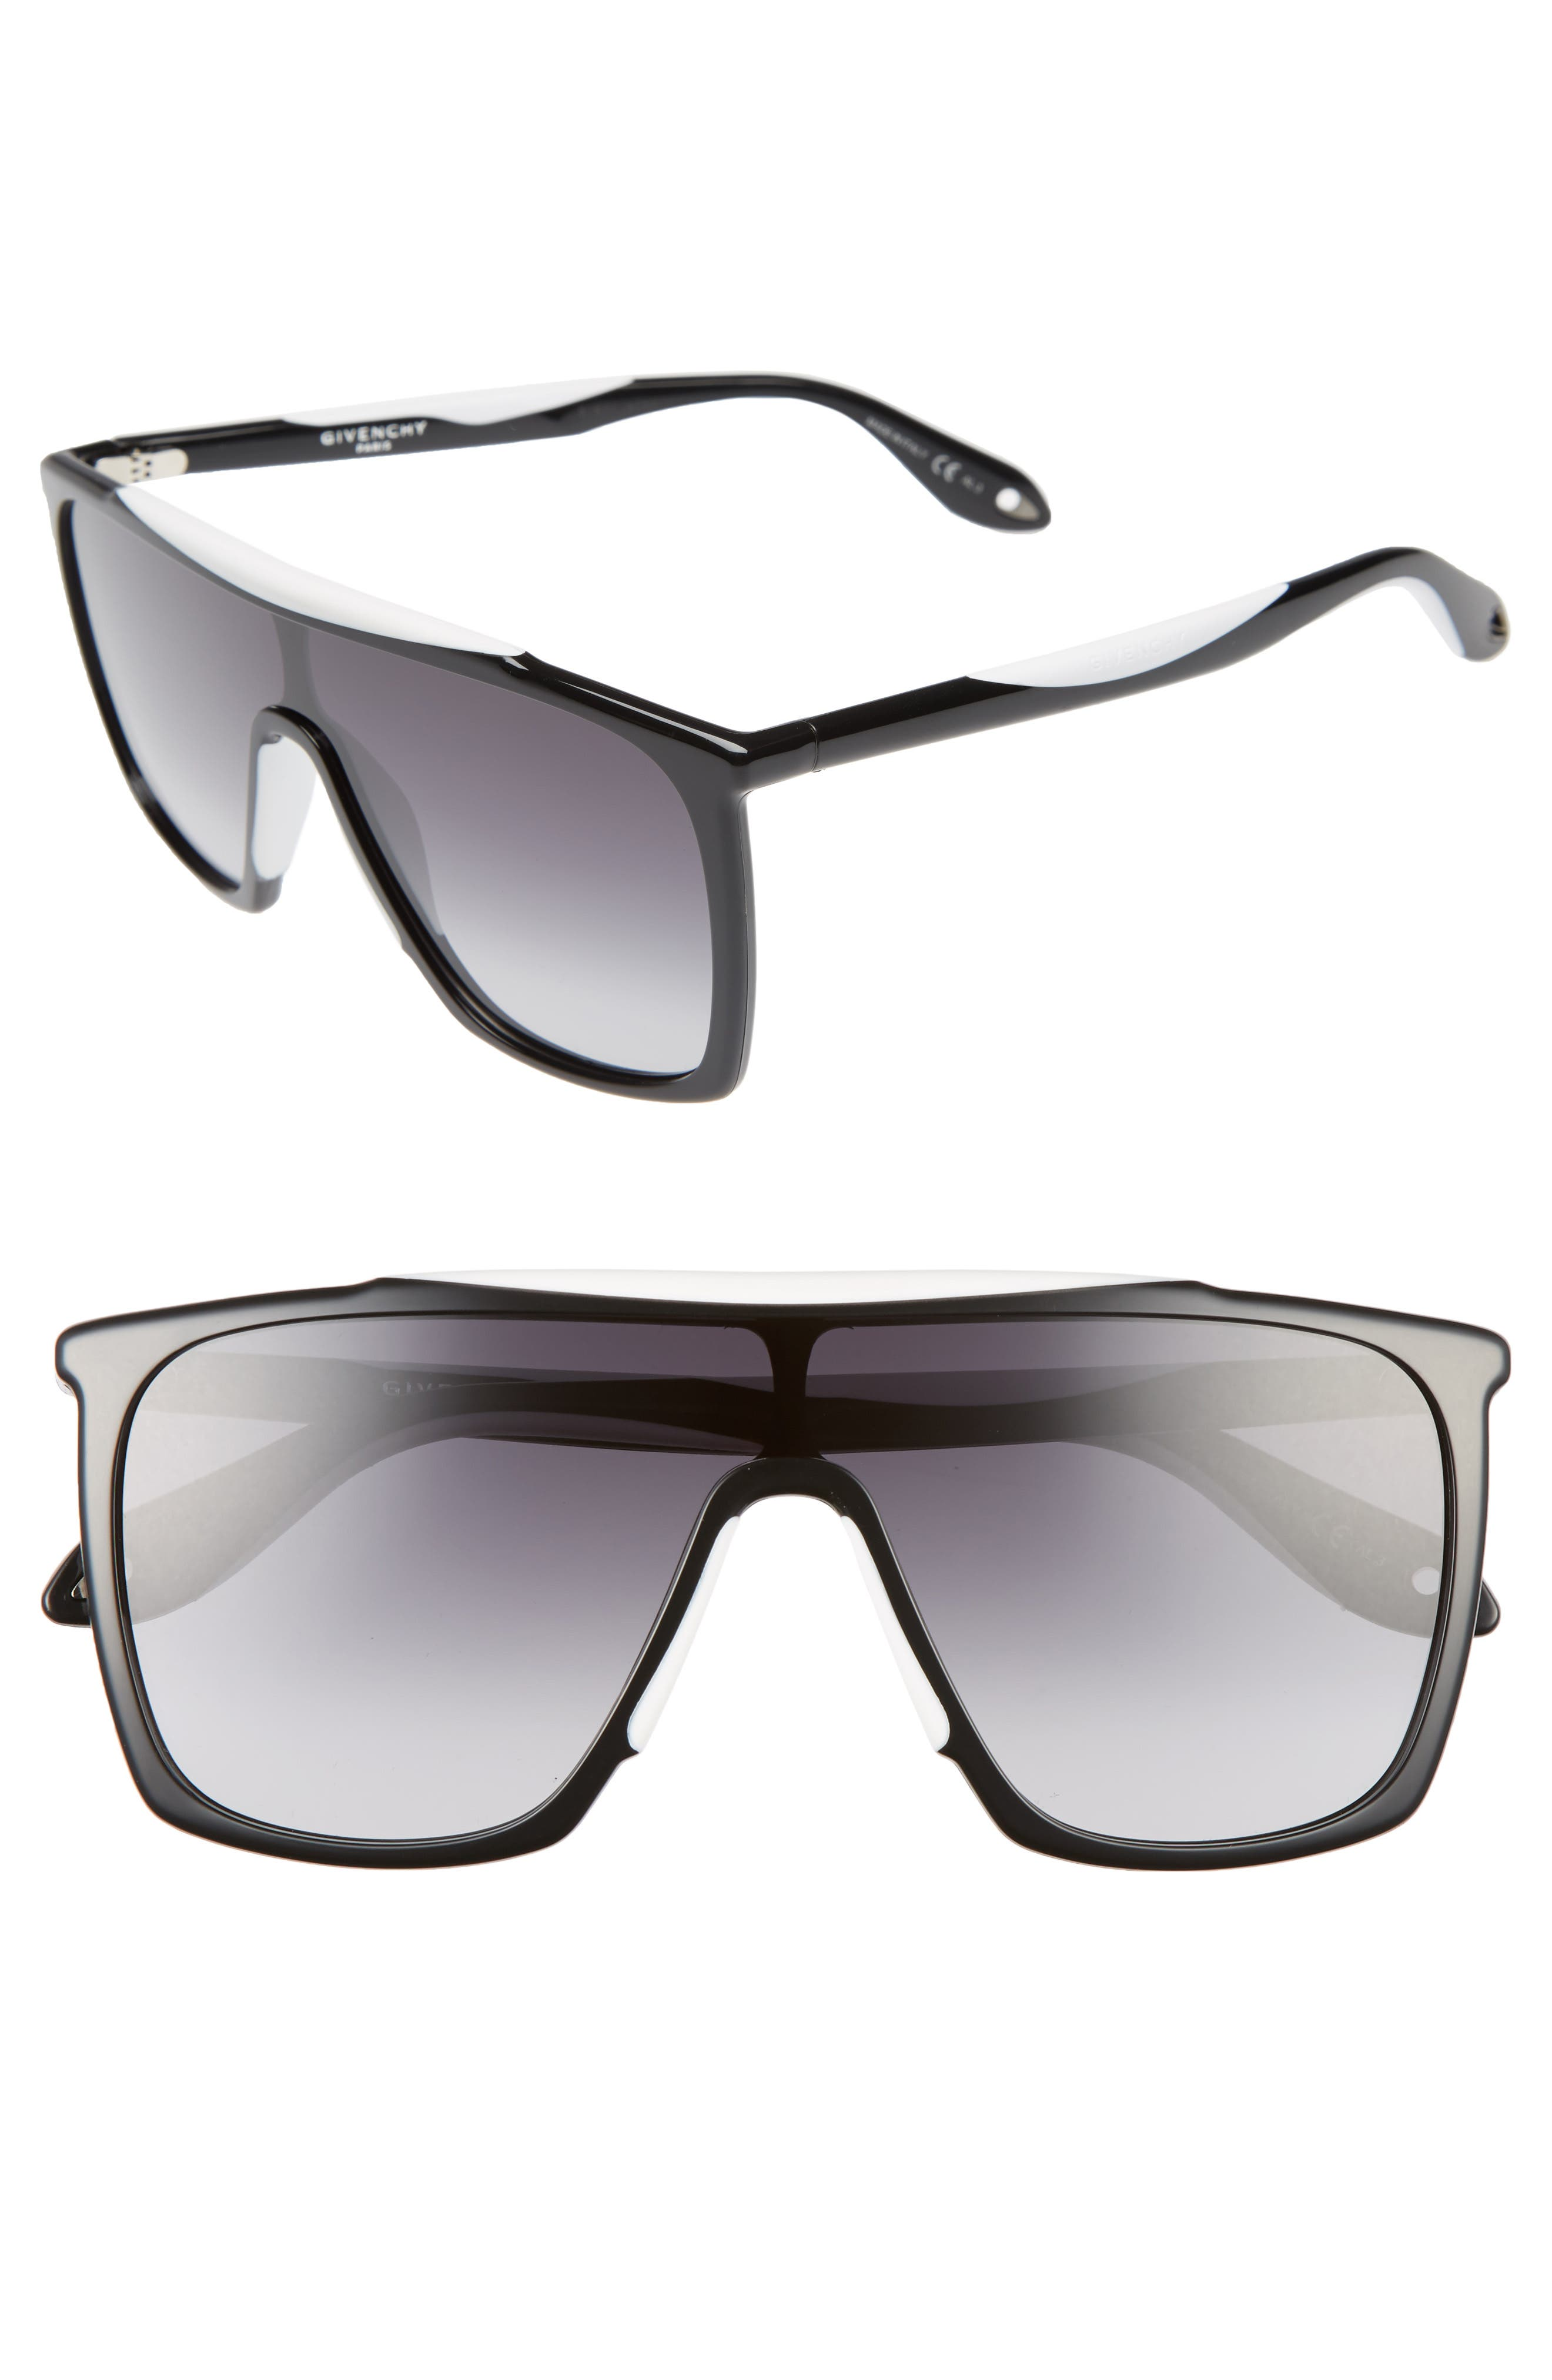 Star of Oakley Classic Glasses Cream White Red Frame Colorful Le